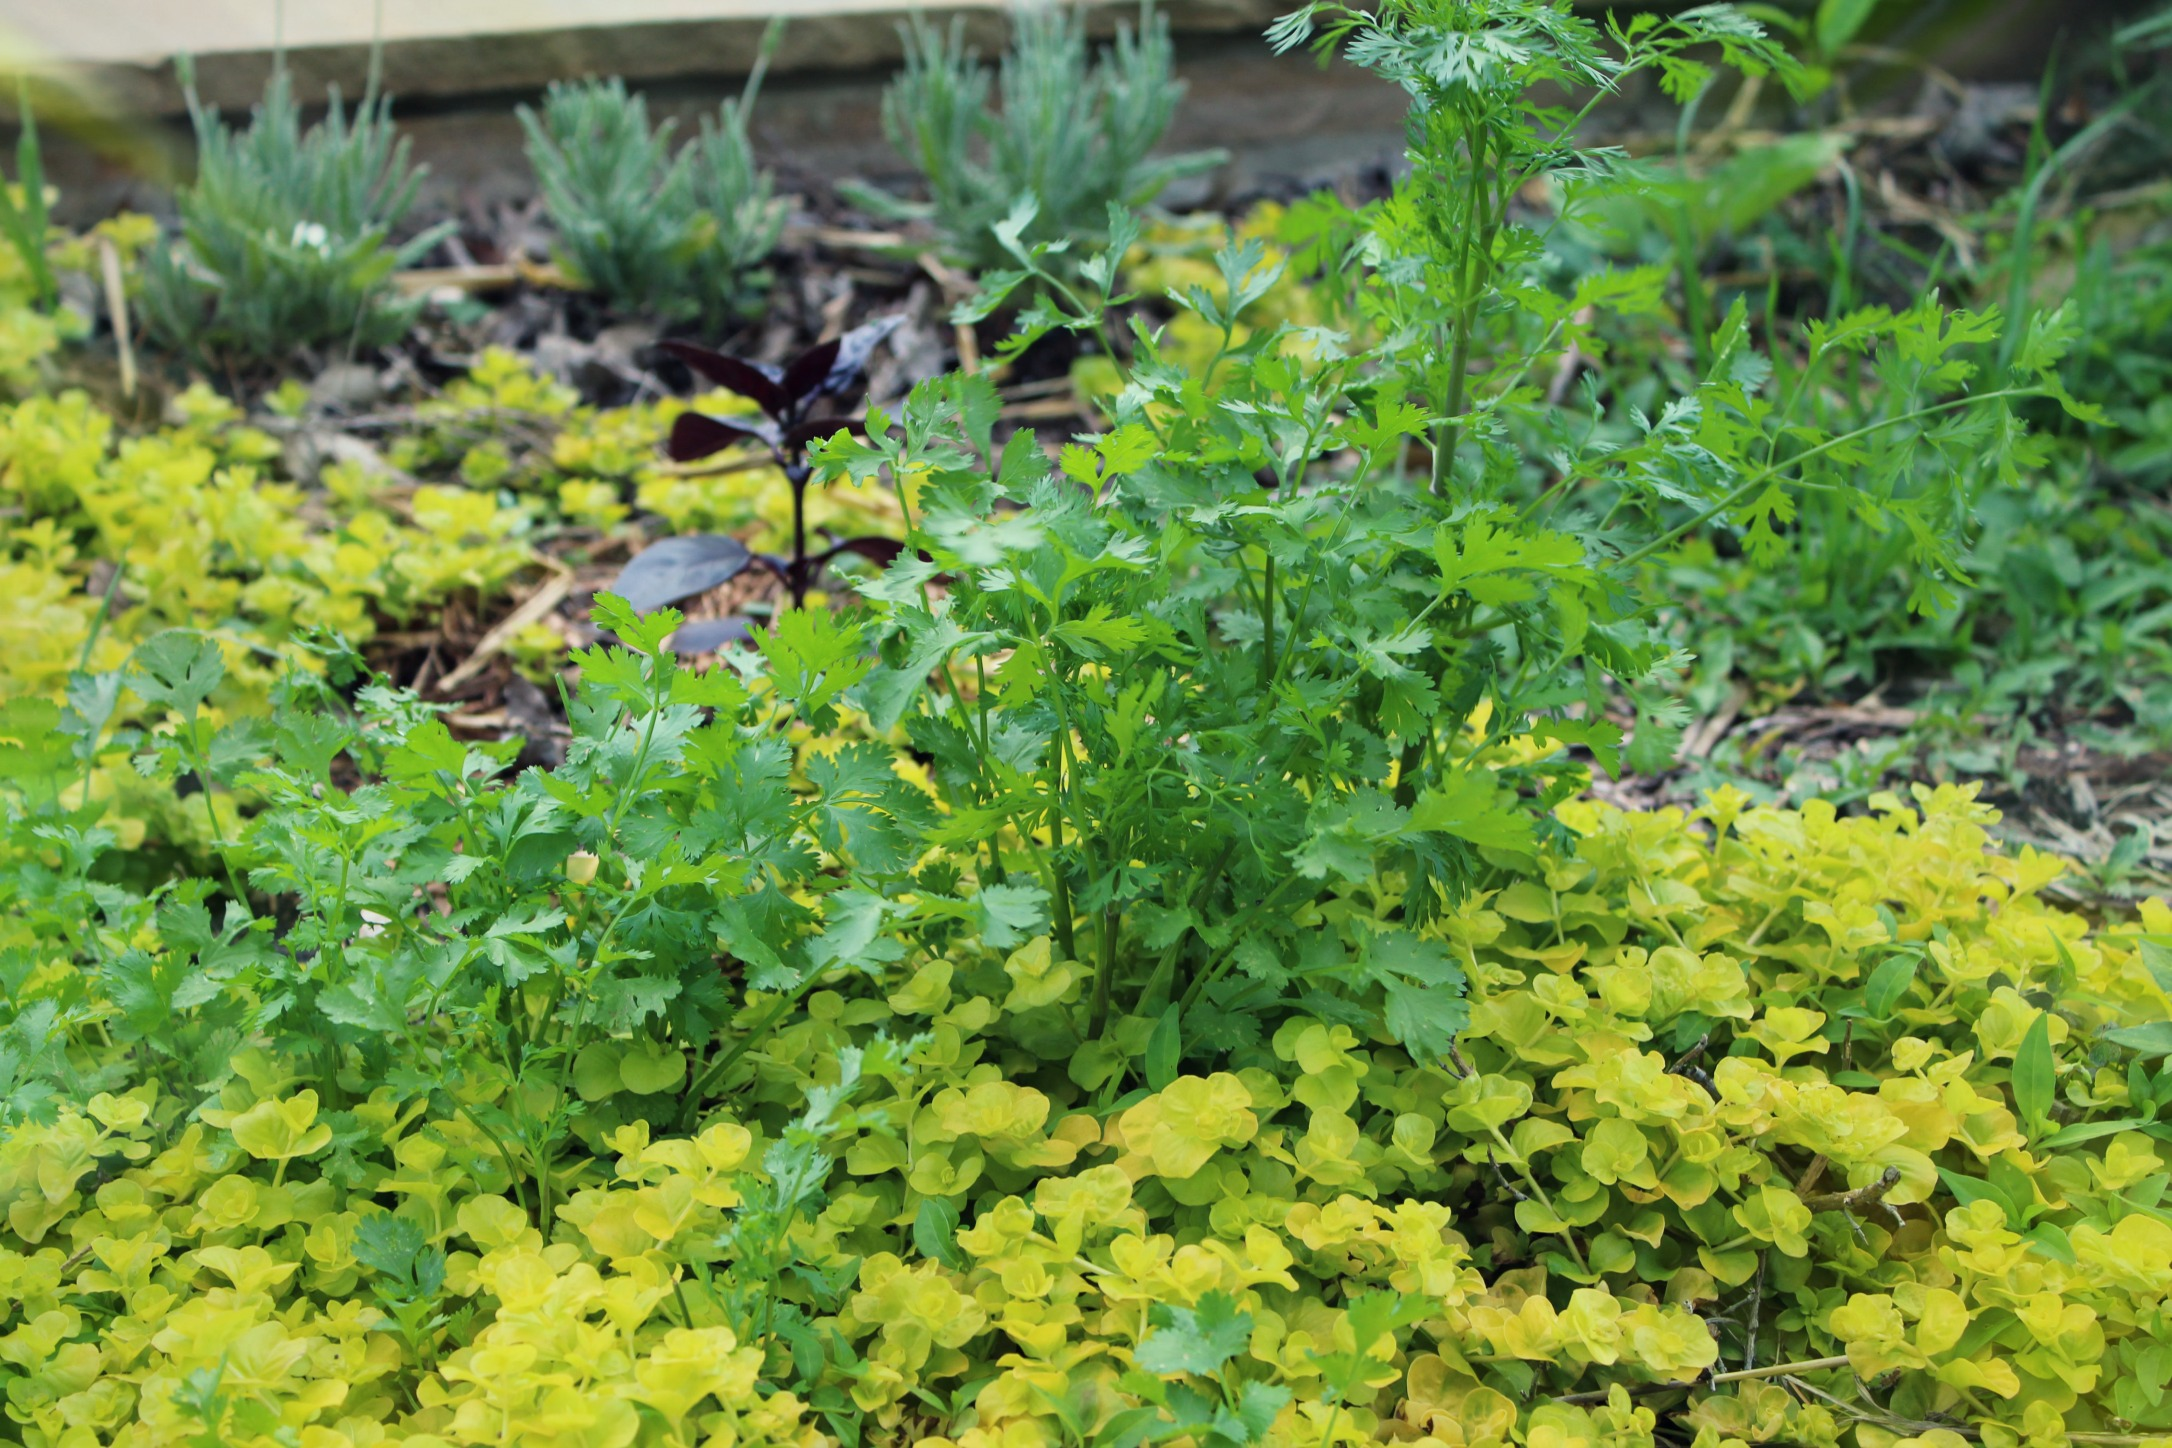 Cilantro growing in the herb garden from last years seeds